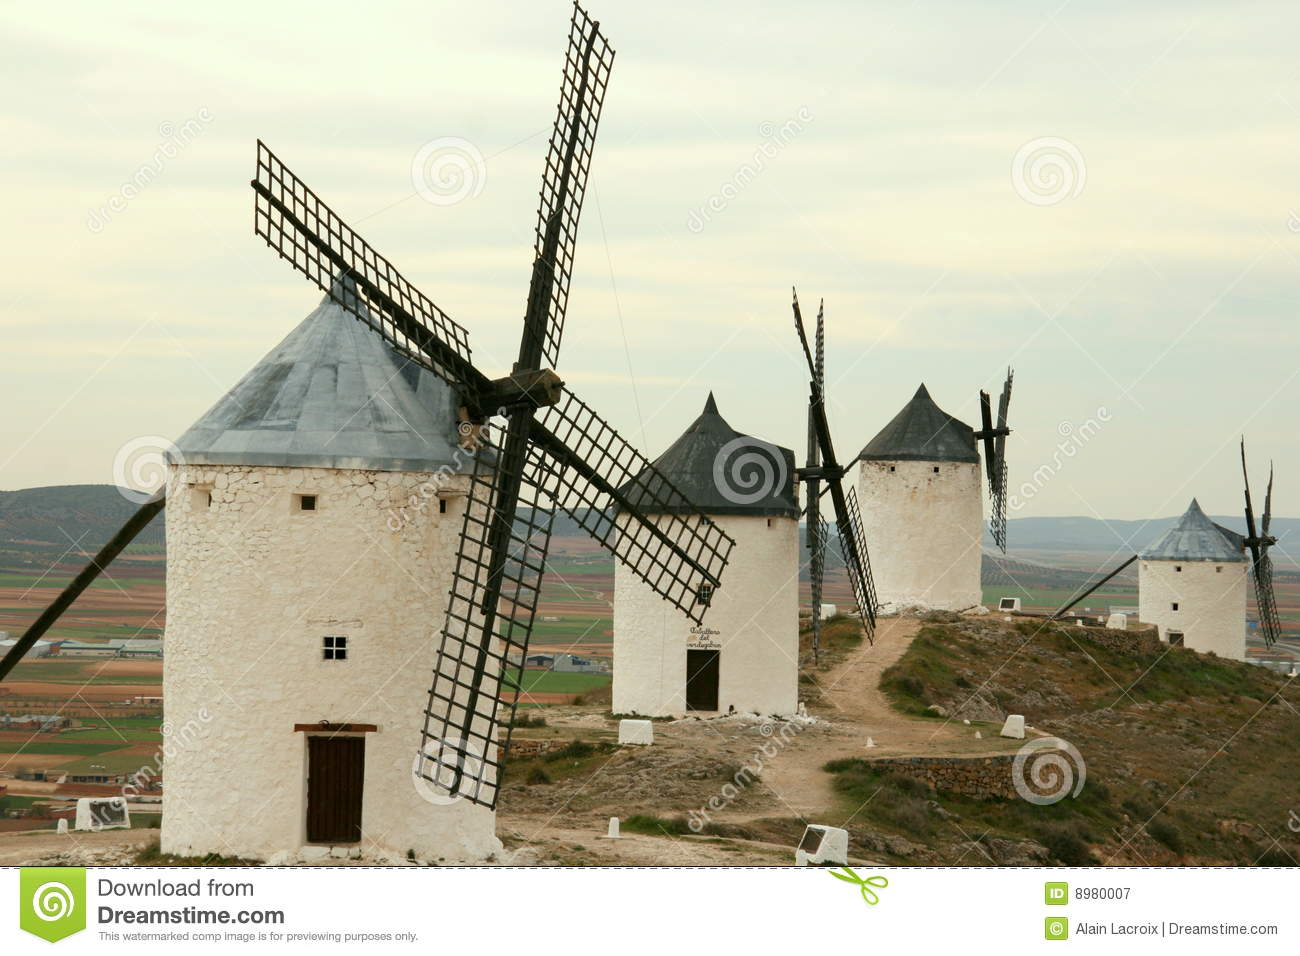 Windmills lined up